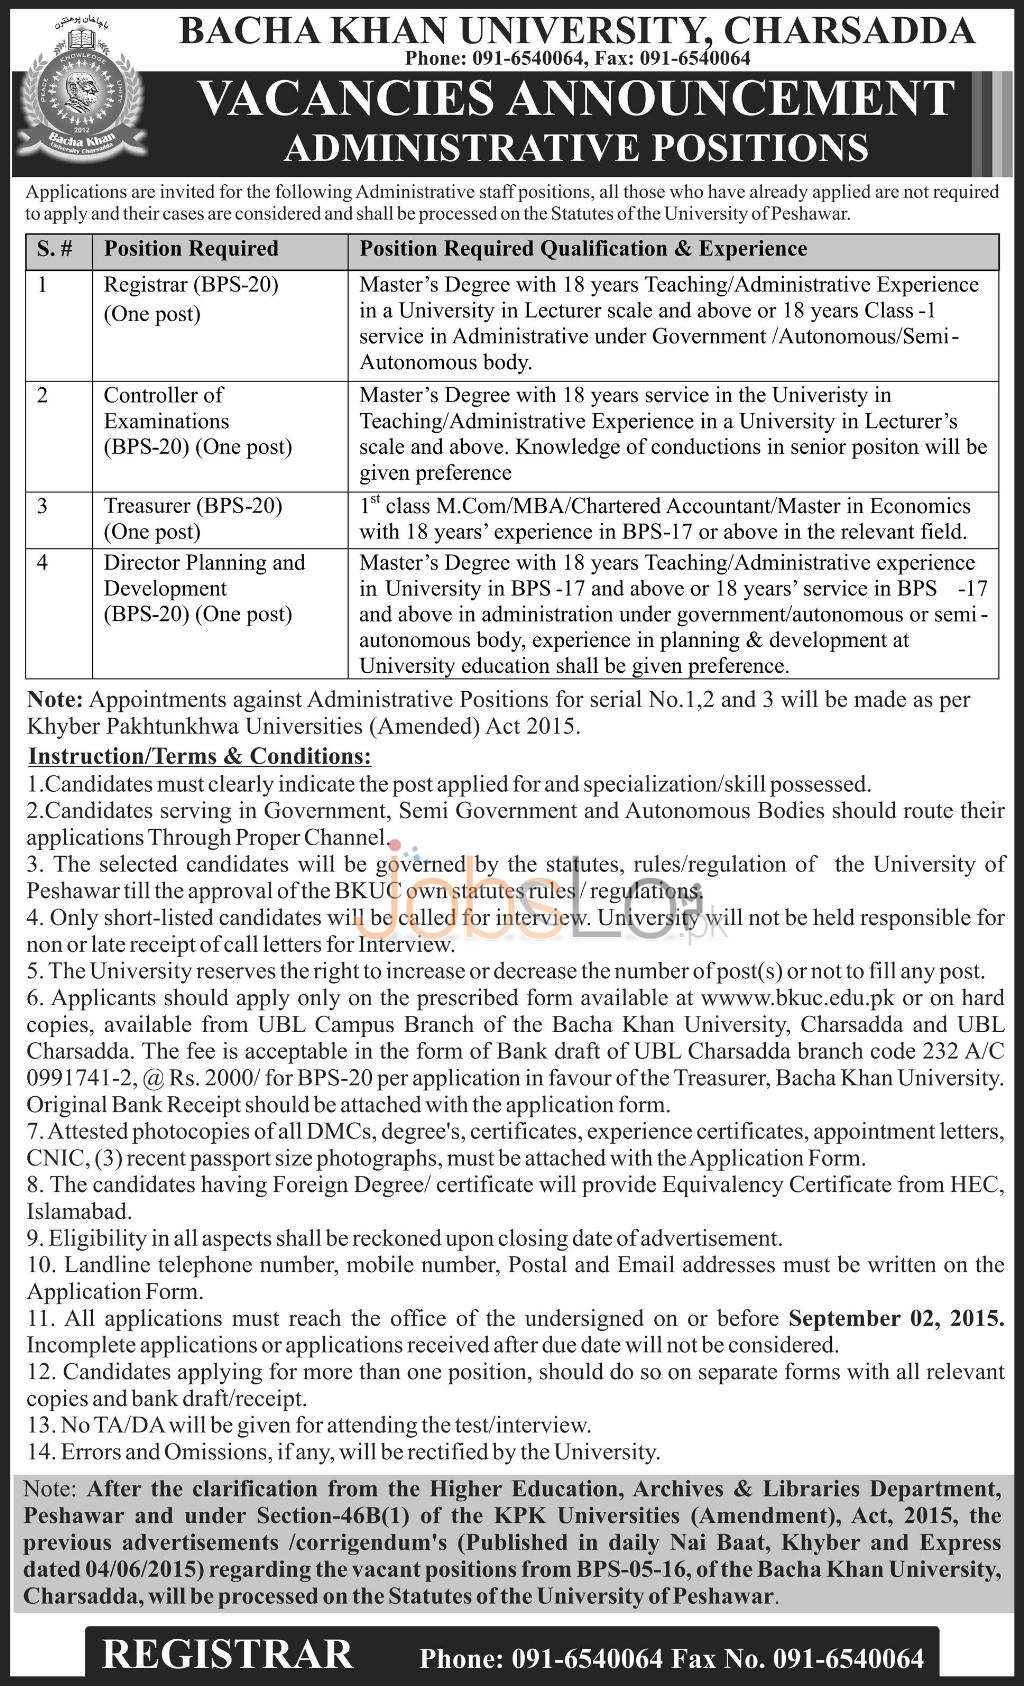 Bacha Khan University Charsadda Jobs